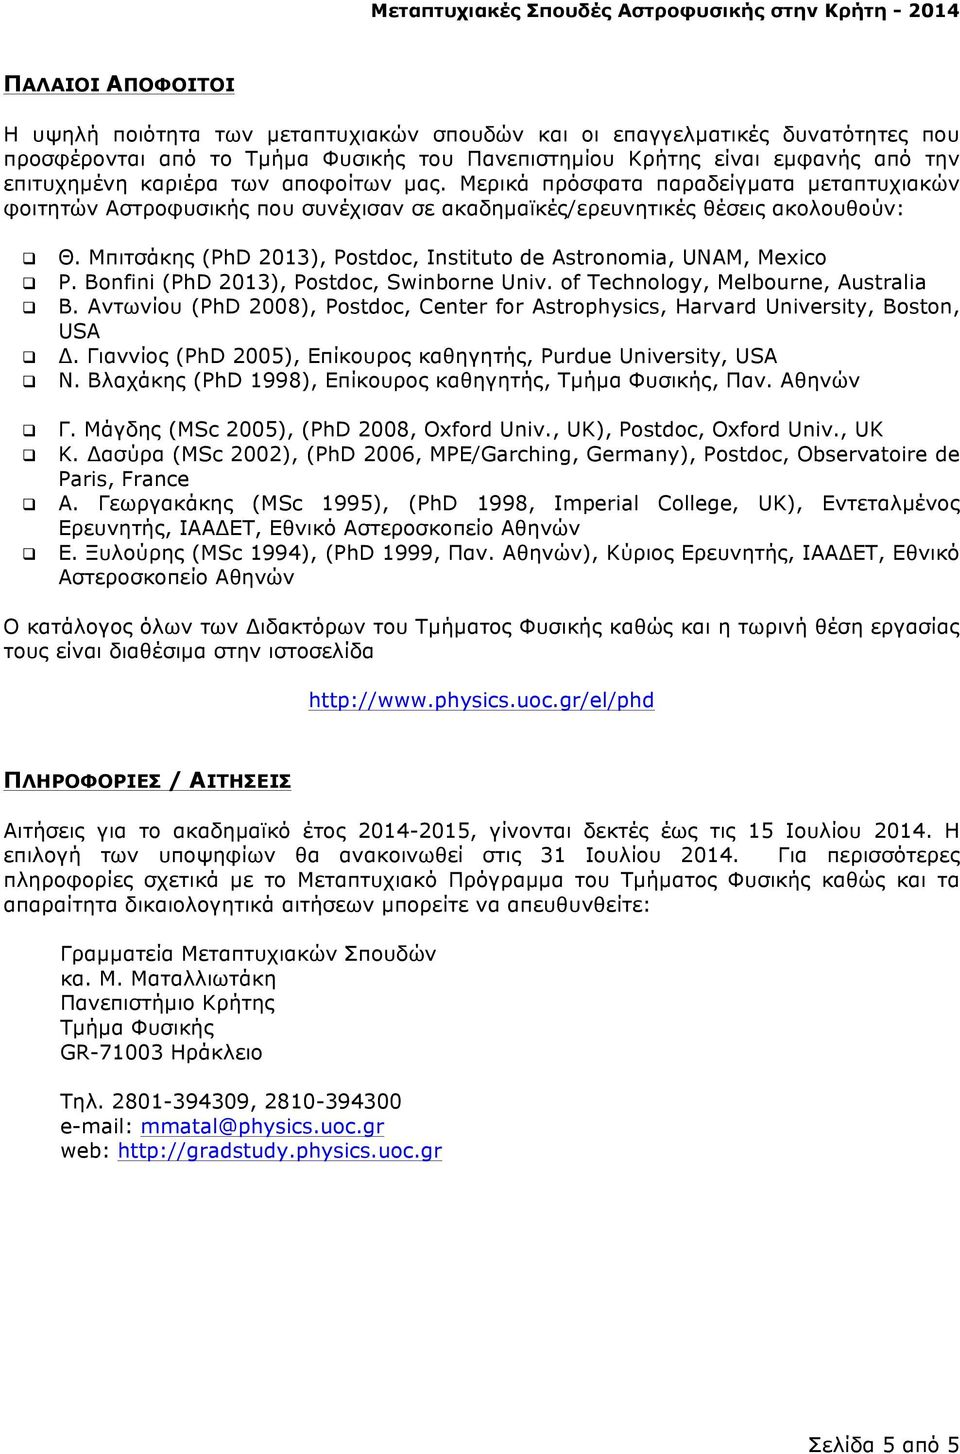 Μπιτσάκης (PhD 2013), Postdoc, Instituto de Astronomia, UNAM, Mexico P. Bonfini (PhD 2013), Postdoc, Swinborne Univ. of Technology, Melbourne, Australia B.